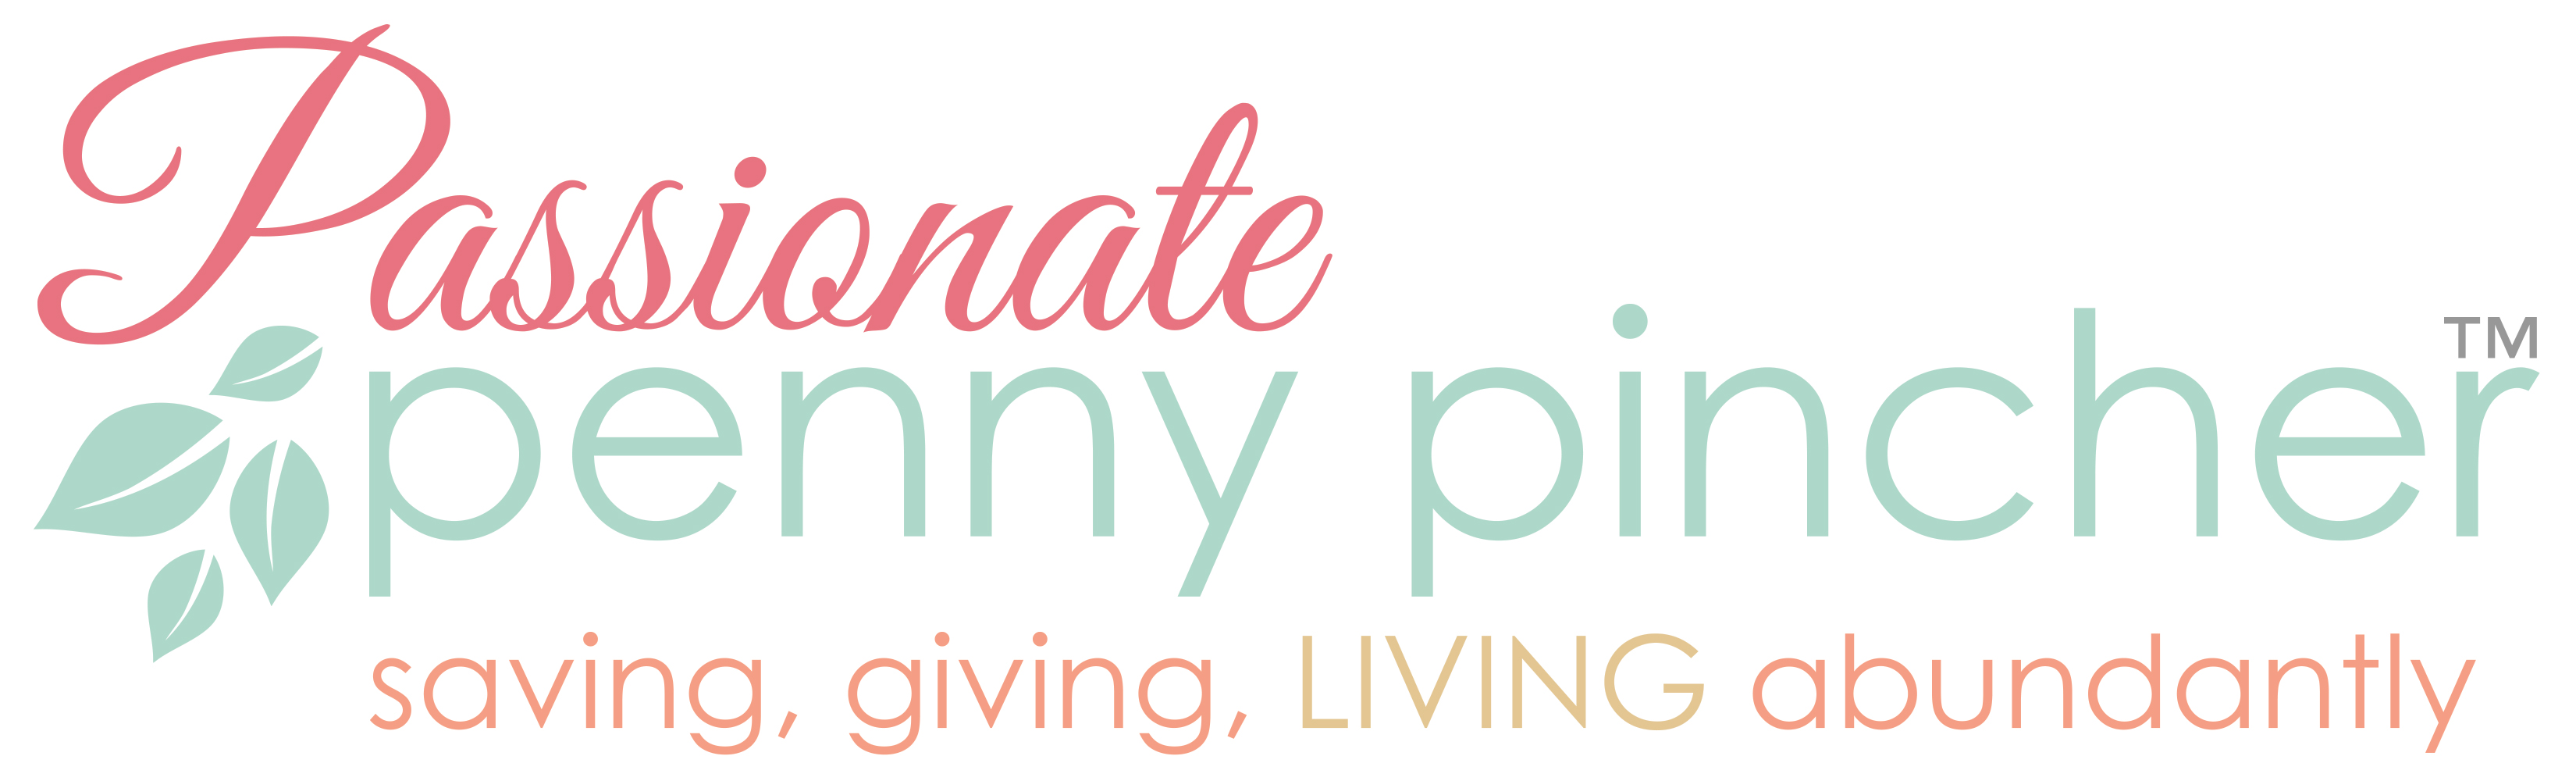 Passionate Penny Pincher Logo